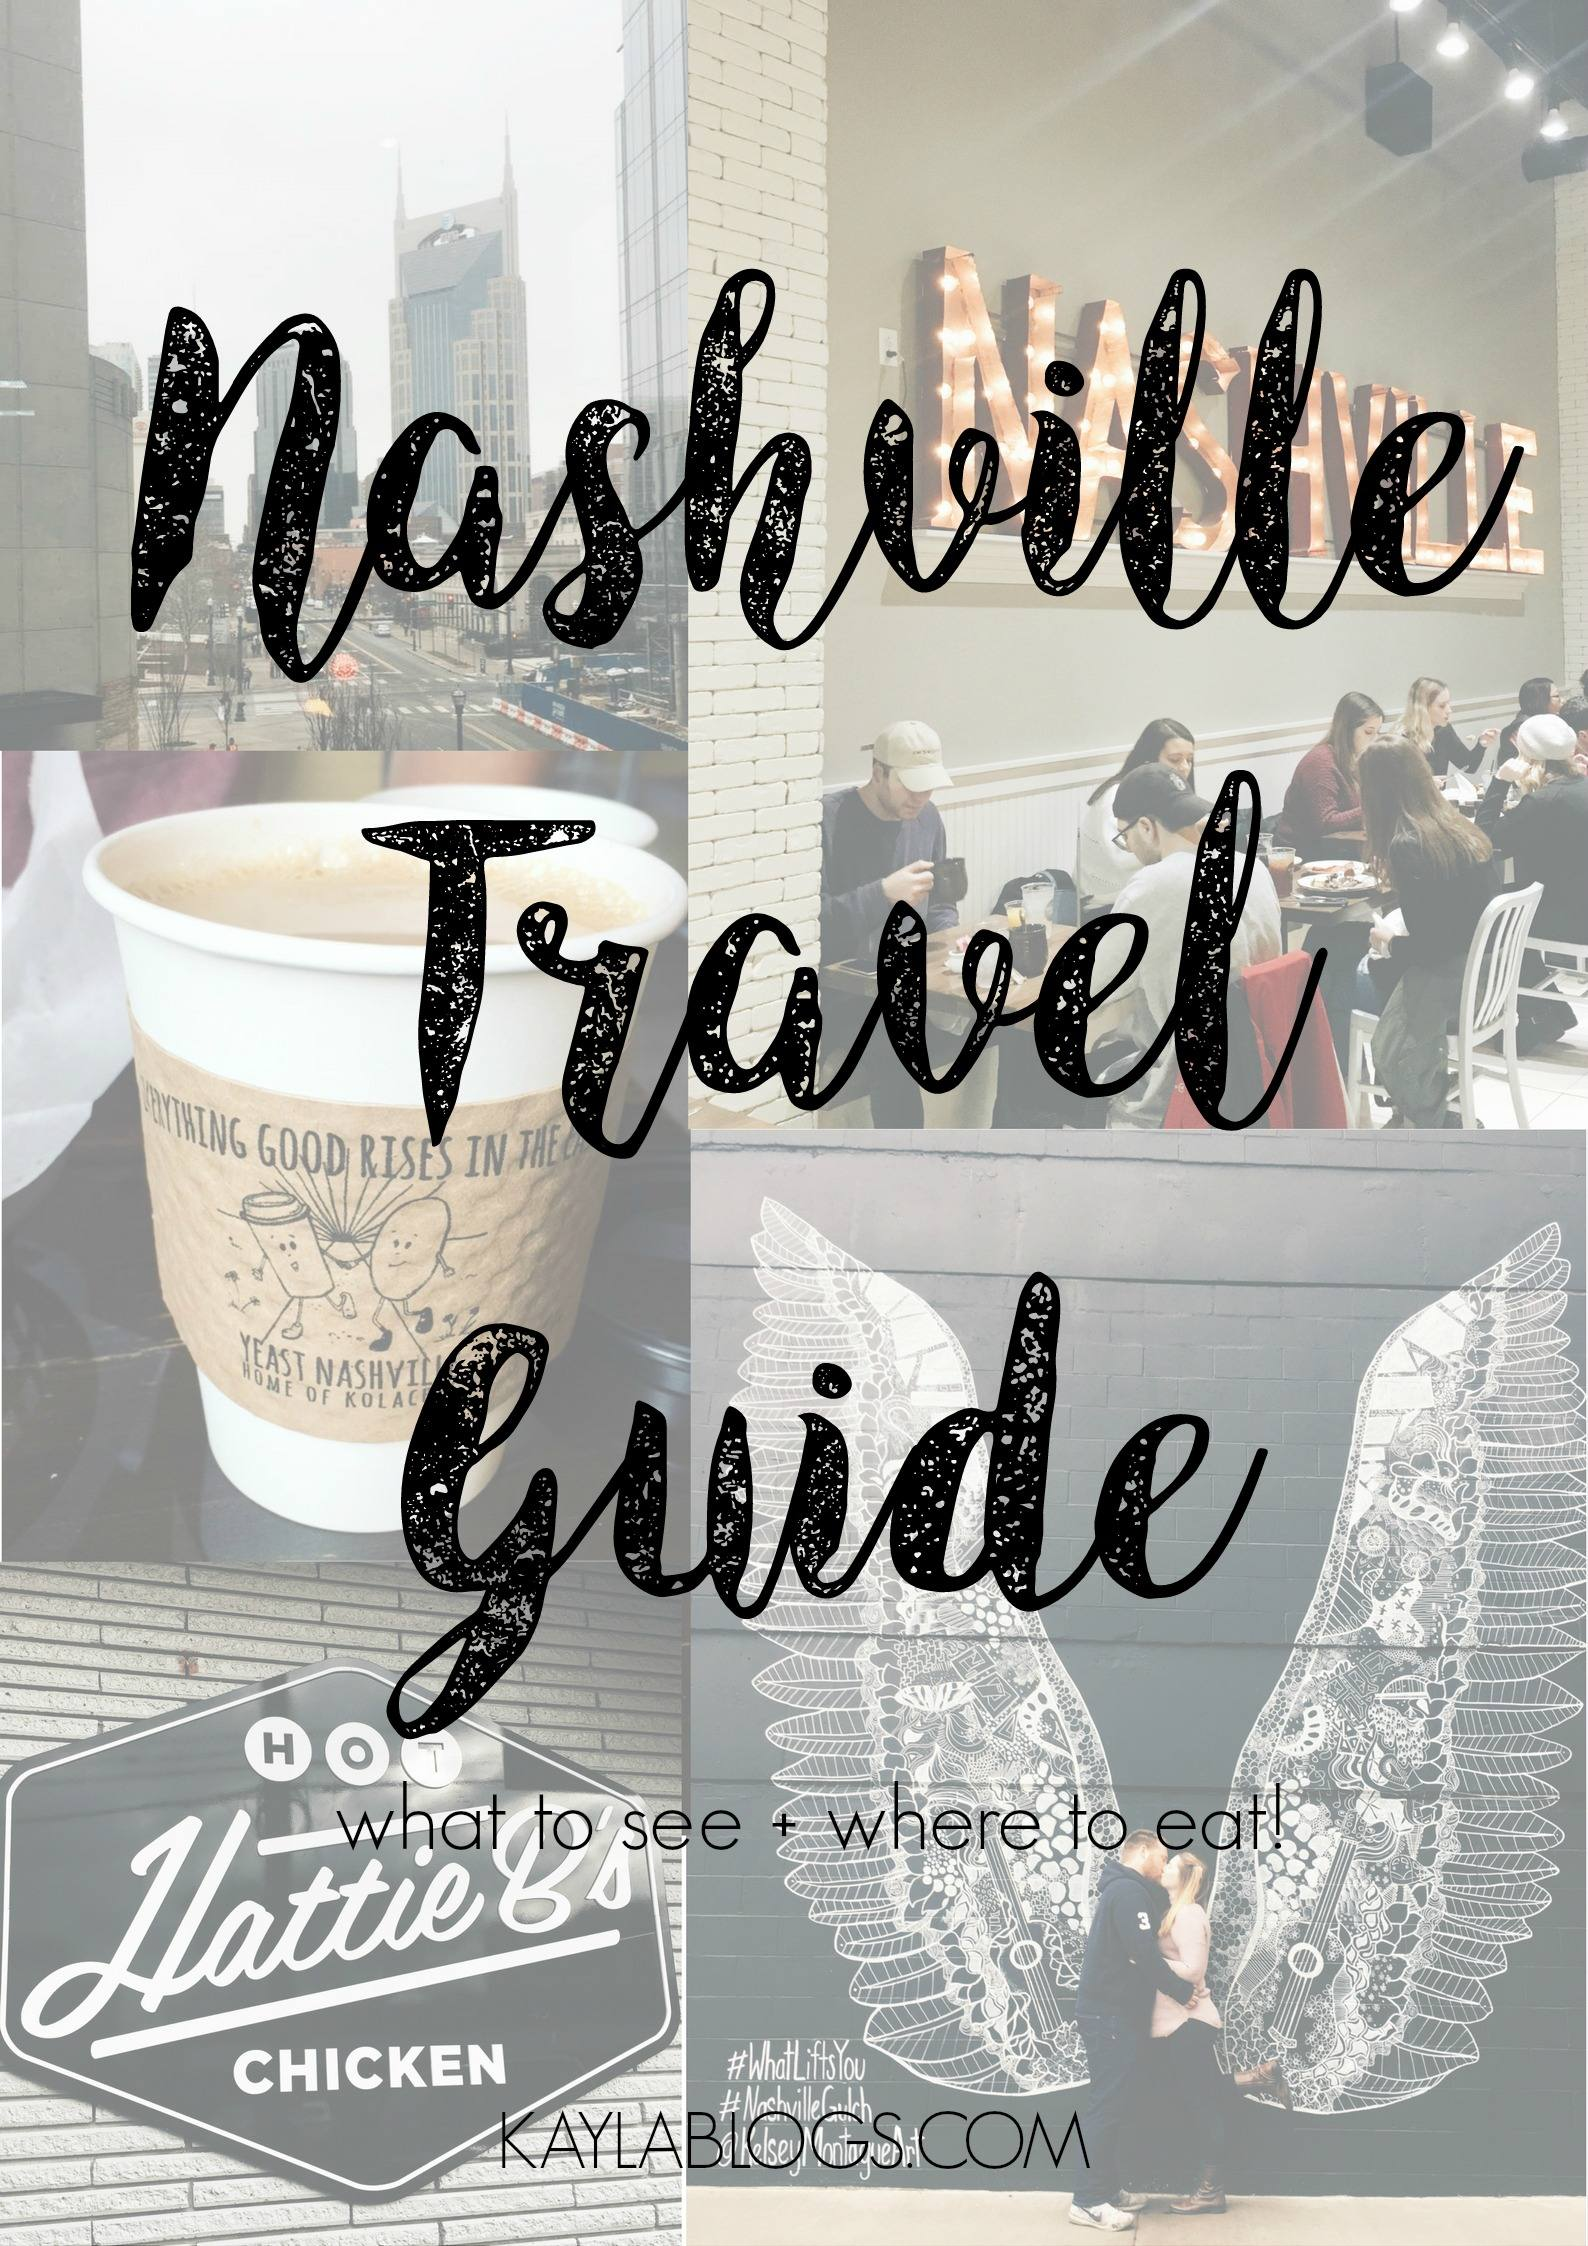 Where to Eat and What to See in Nashville